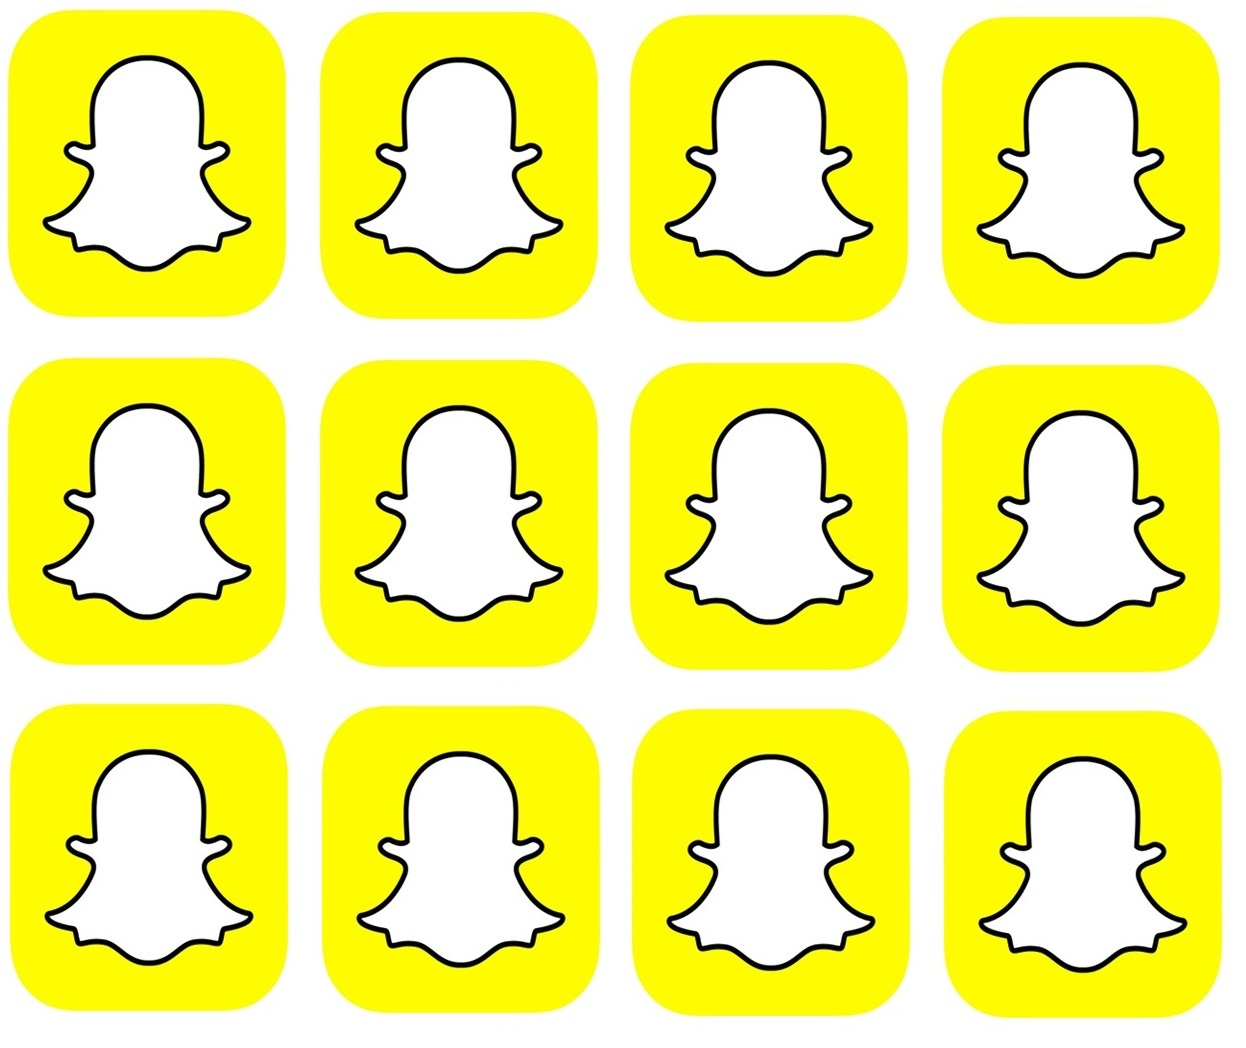 5 Key Questions about Snap Inc., Snapchat and the Future after IPO | Social Media Today